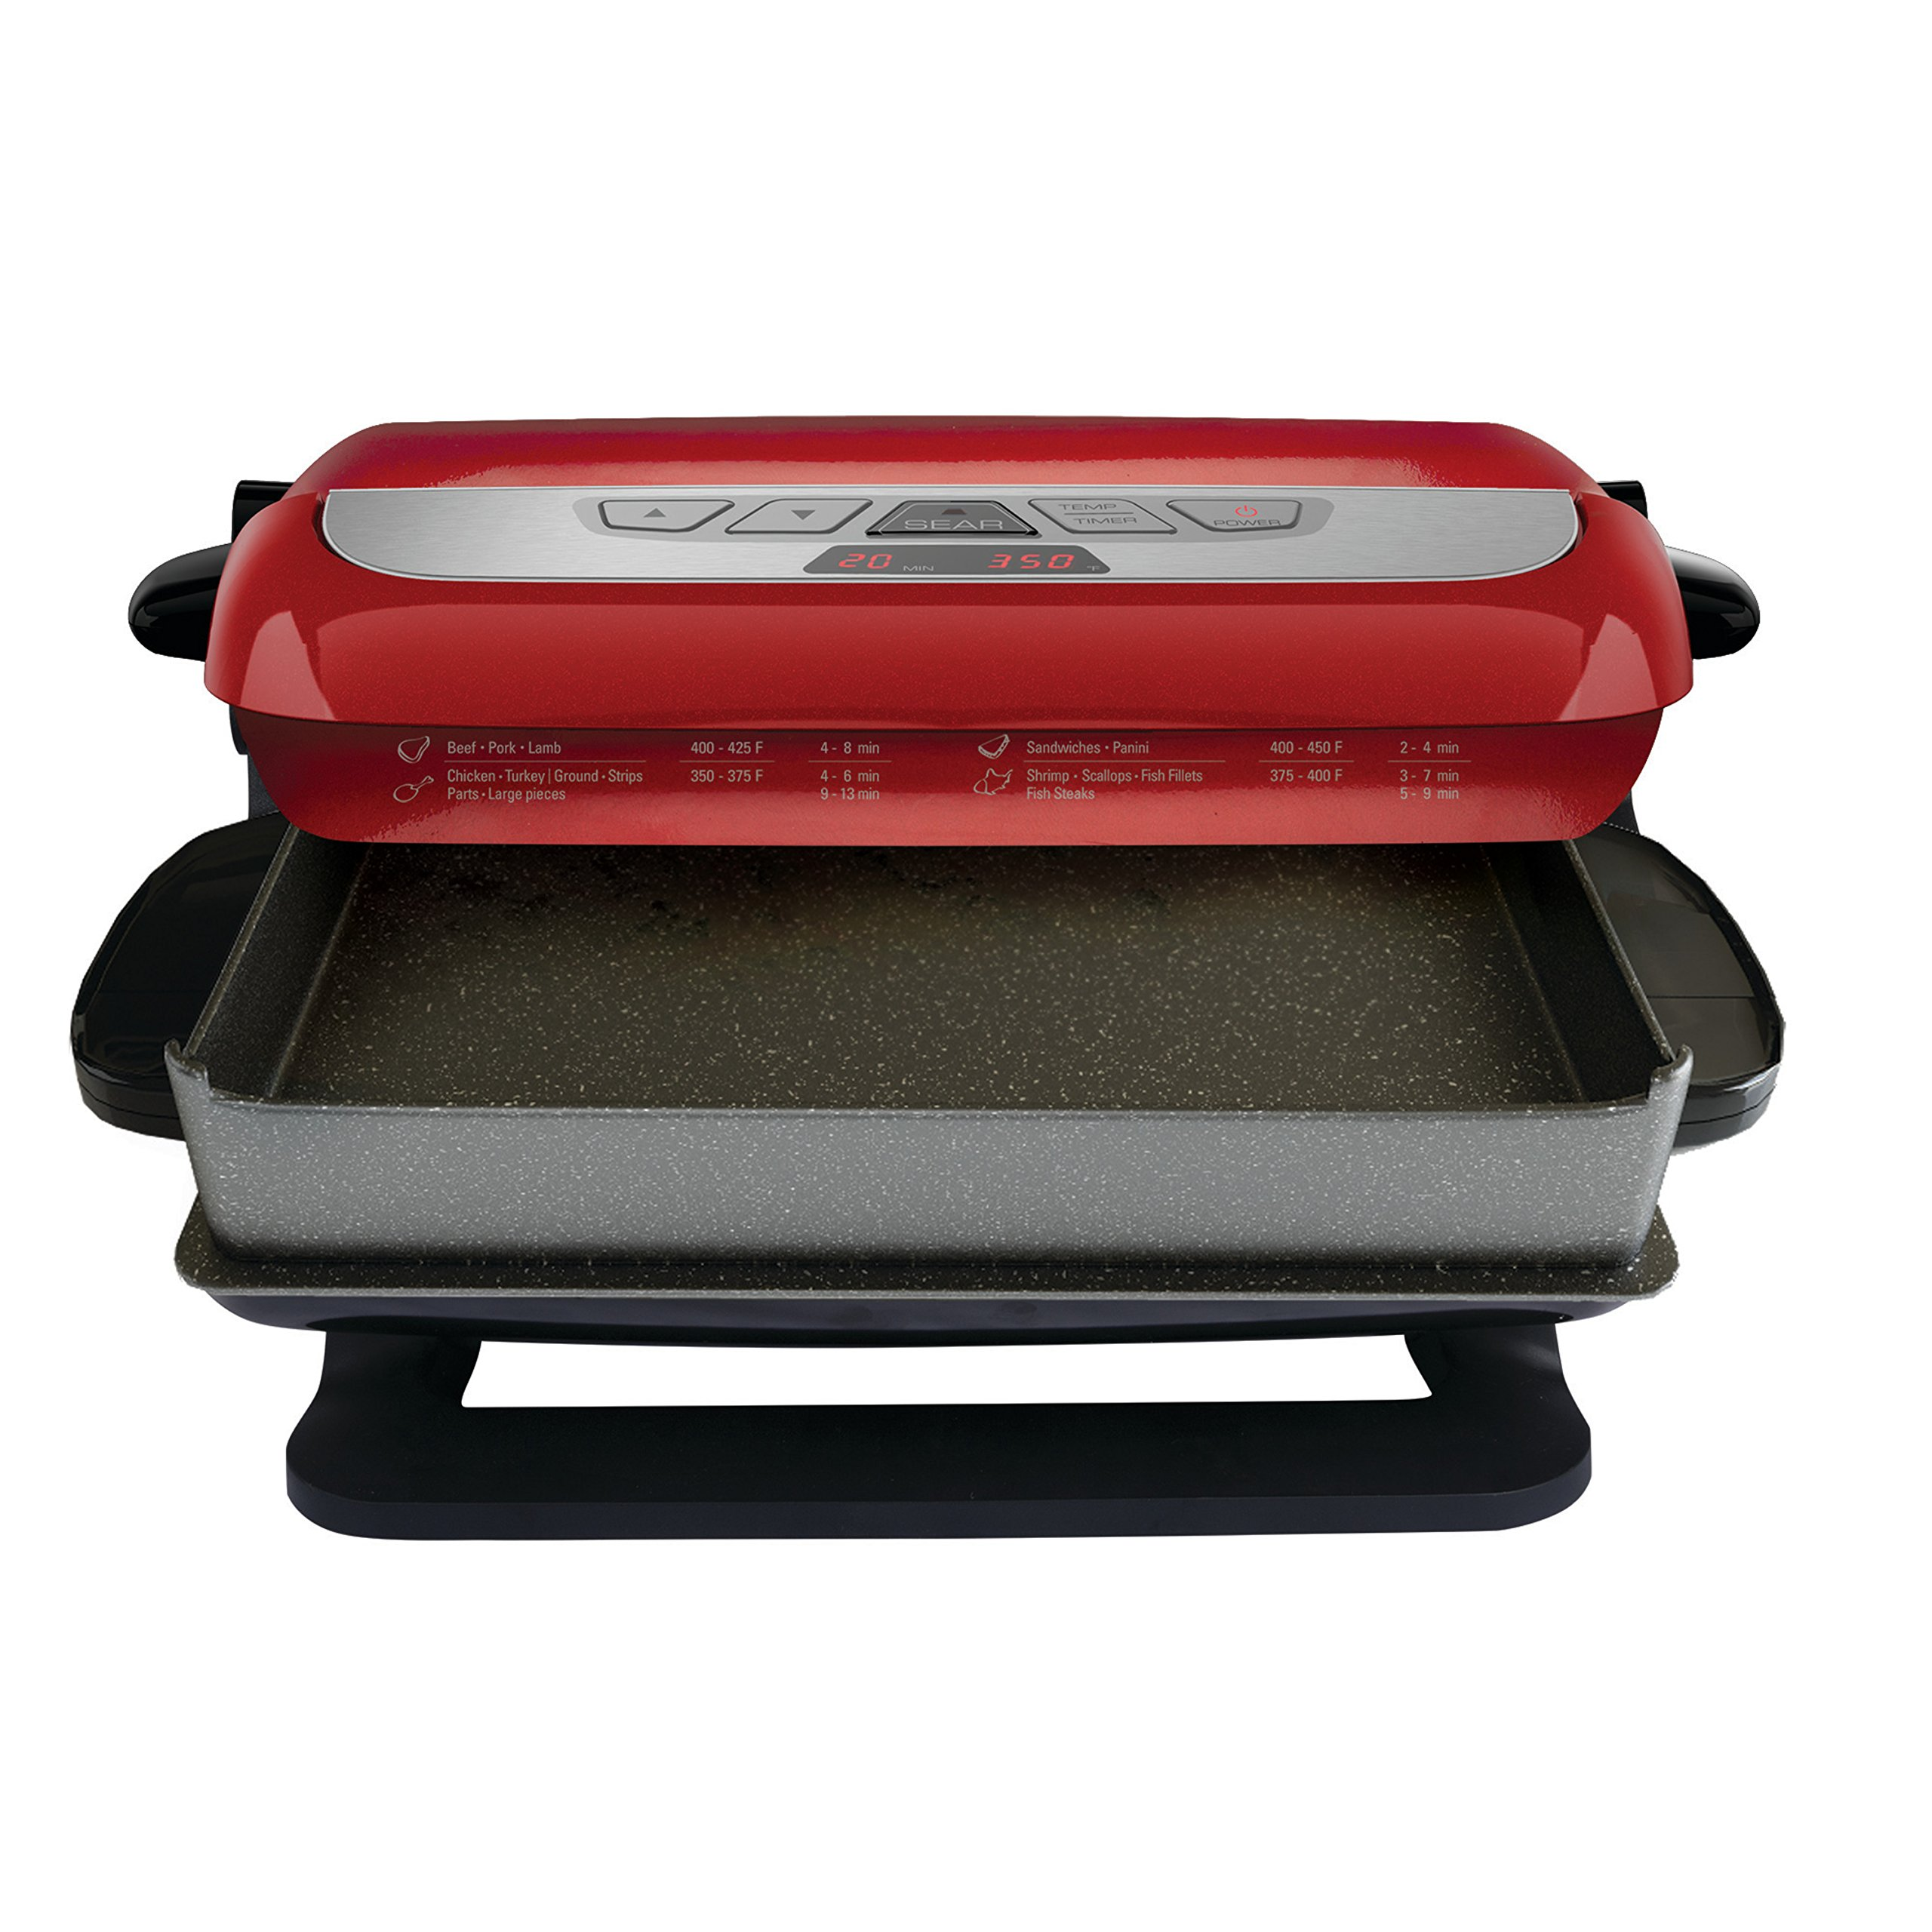 George Foreman 5-Serving Multi-Plate Evolve Grill System with Ceramic Plates, Deep Dish Bake Pan and Muffin Pan, Red, GRP4800R by George Foreman (Image #8)